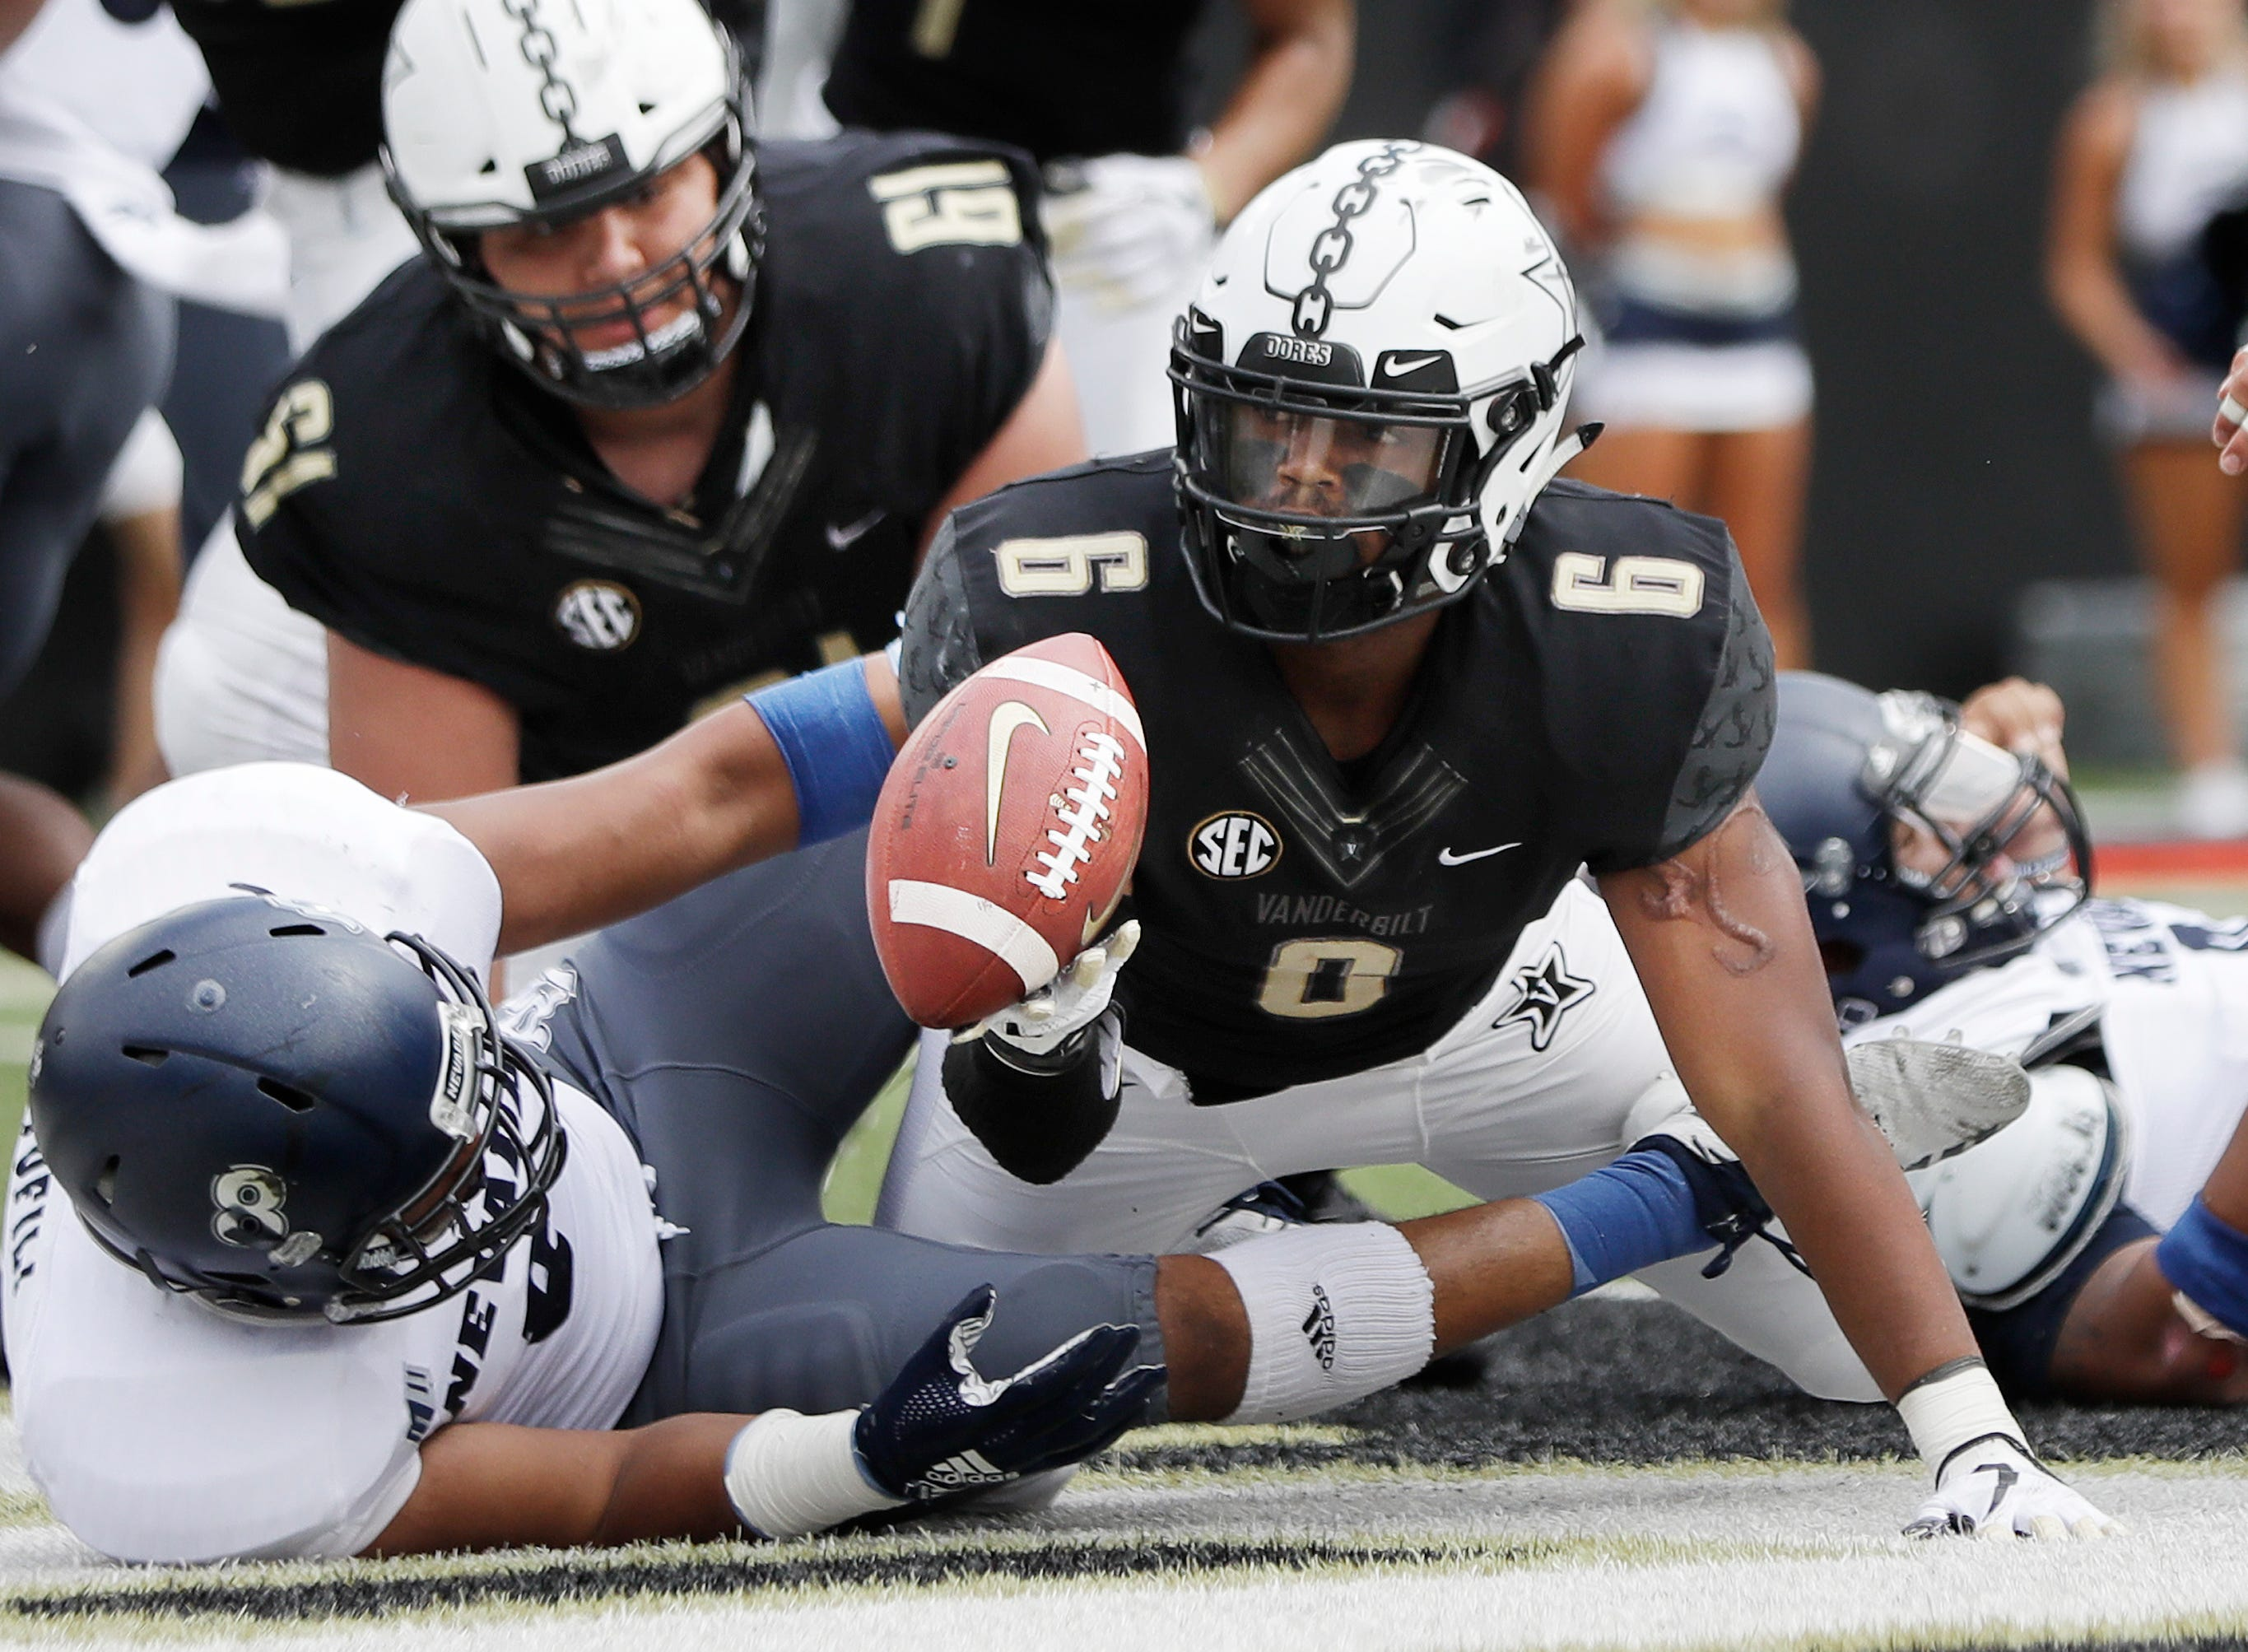 Vanderbilt running back Josh Crawford, who is an Edgewood graduate, tosses the ball away after scoring a touchdown against Nevada on Sept. 8.